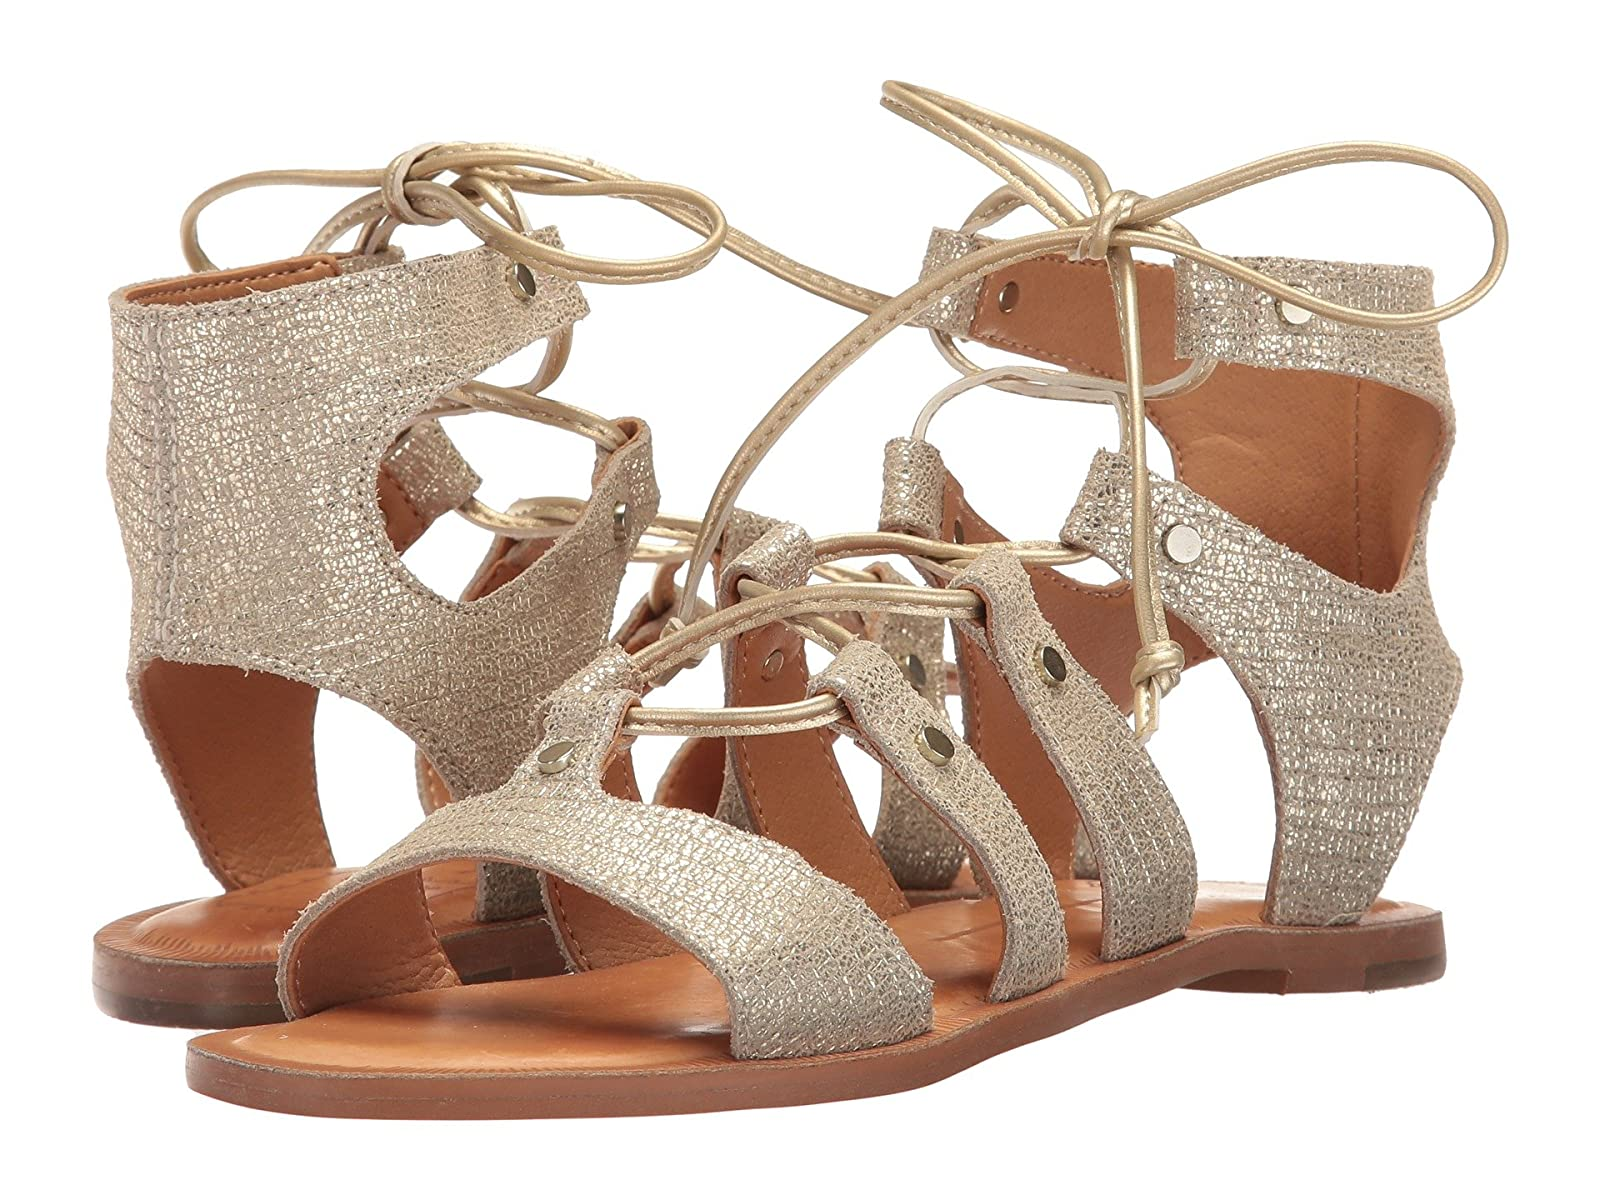 Dolce Vita JasmynCheap and distinctive eye-catching shoes